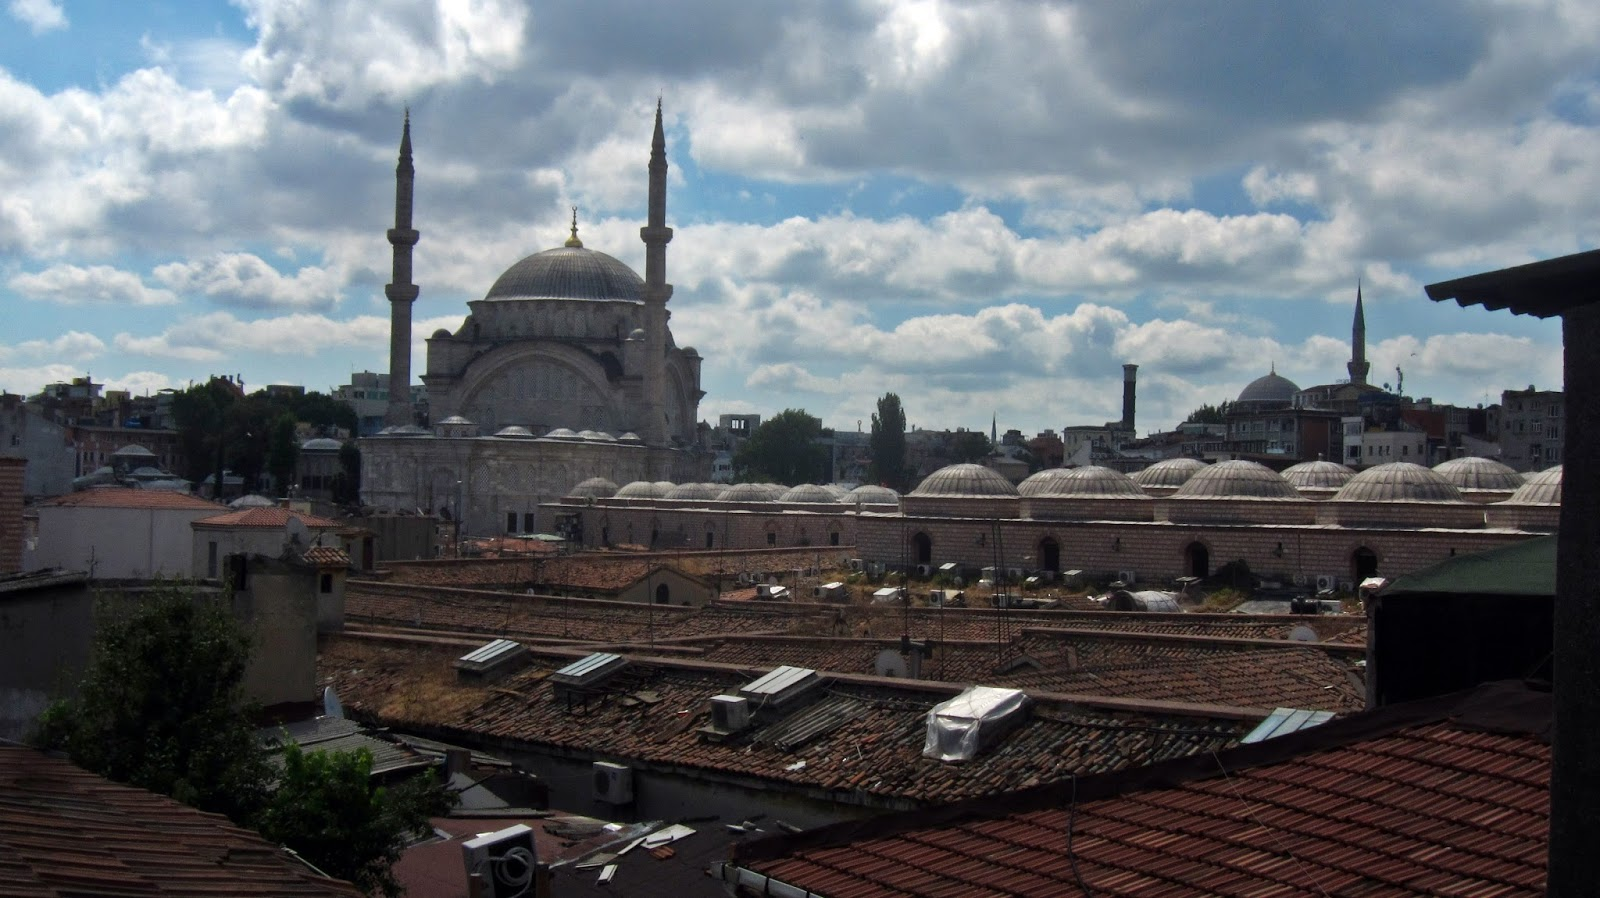 Where Is Darren Now?: Istanbul - Part 2